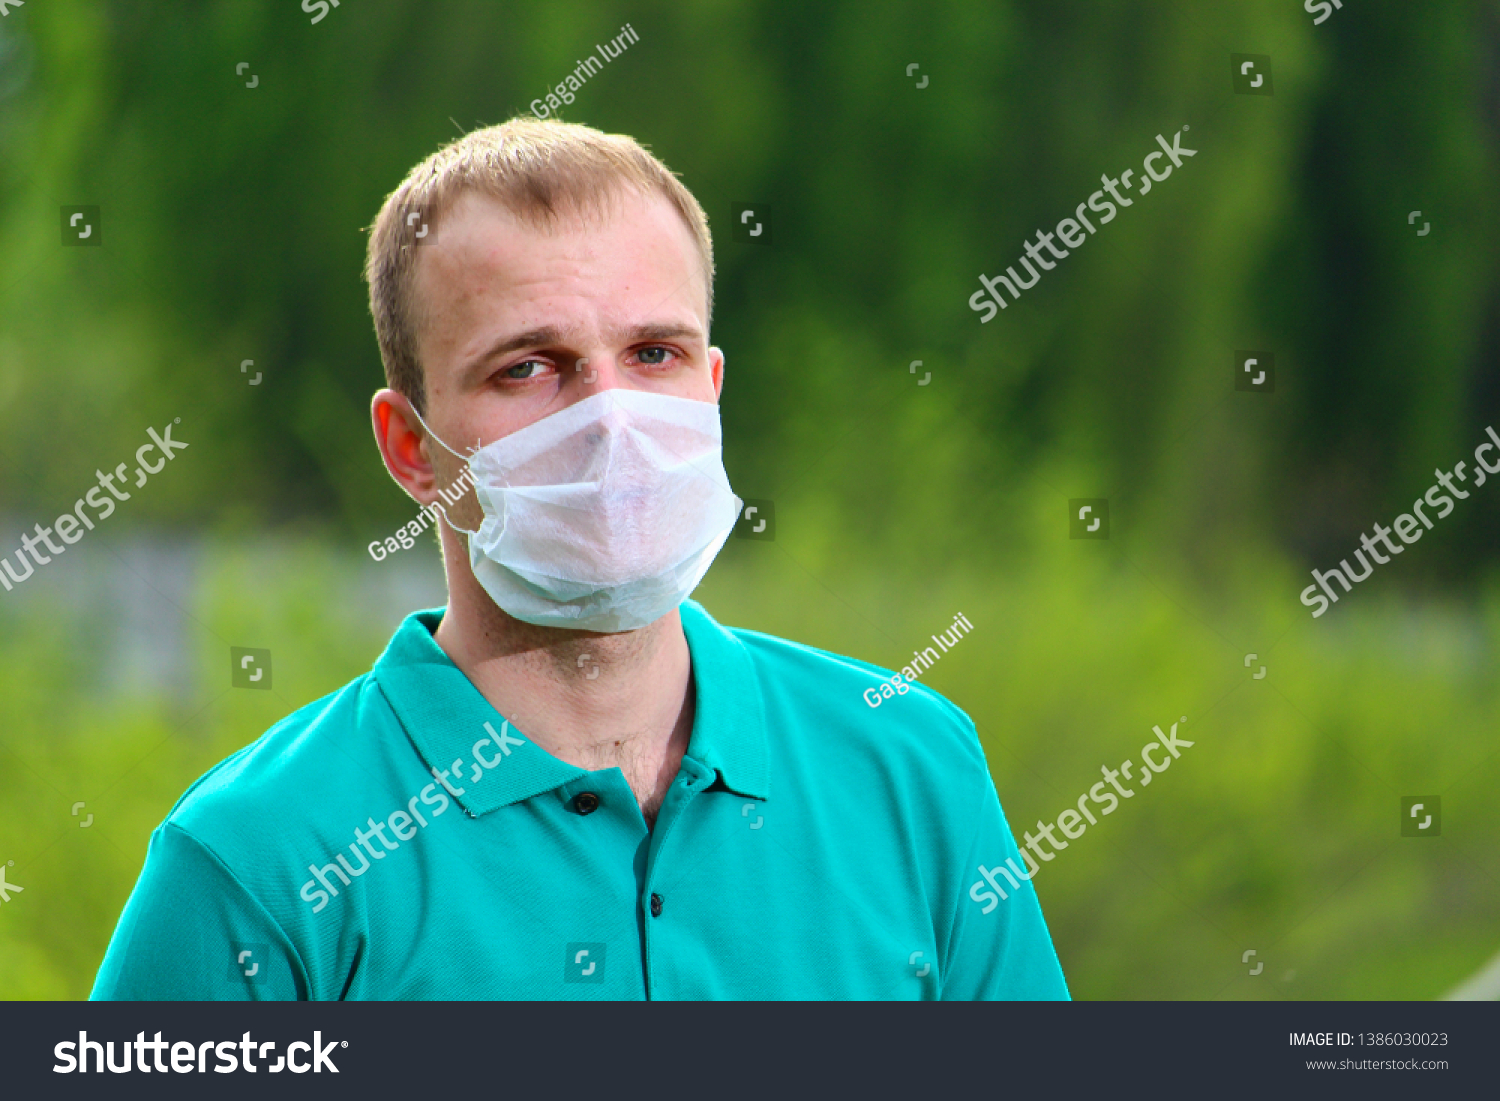 A man in a mask on a blurred background of nature #1386030023